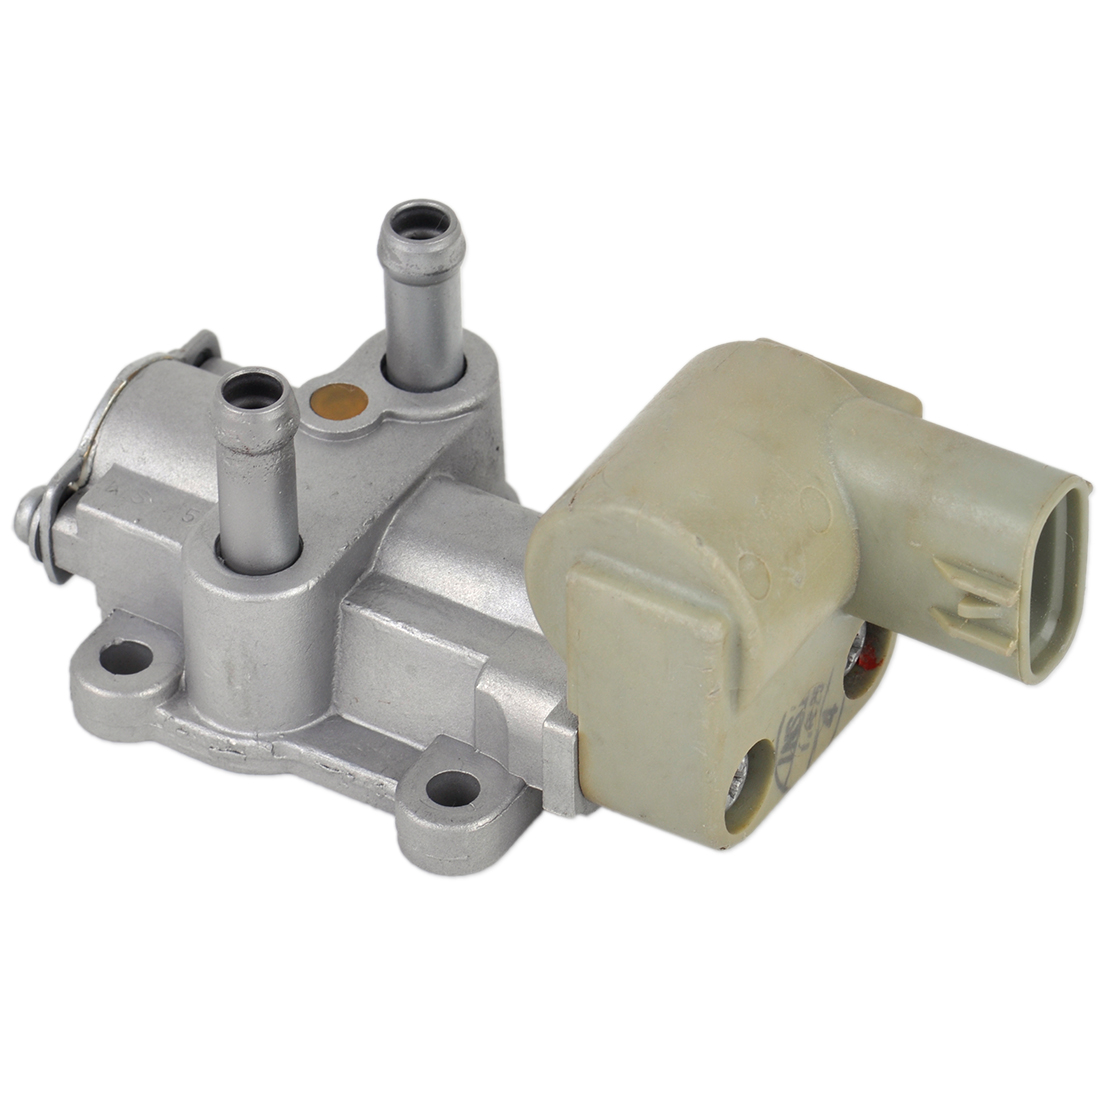 Beler New Idle Air Control Valve Iacv For Honda Civic Cx Dx Lx 1996 1997 1998 1999 2000 16022p2aj01 Gegt7610303 In Covers From